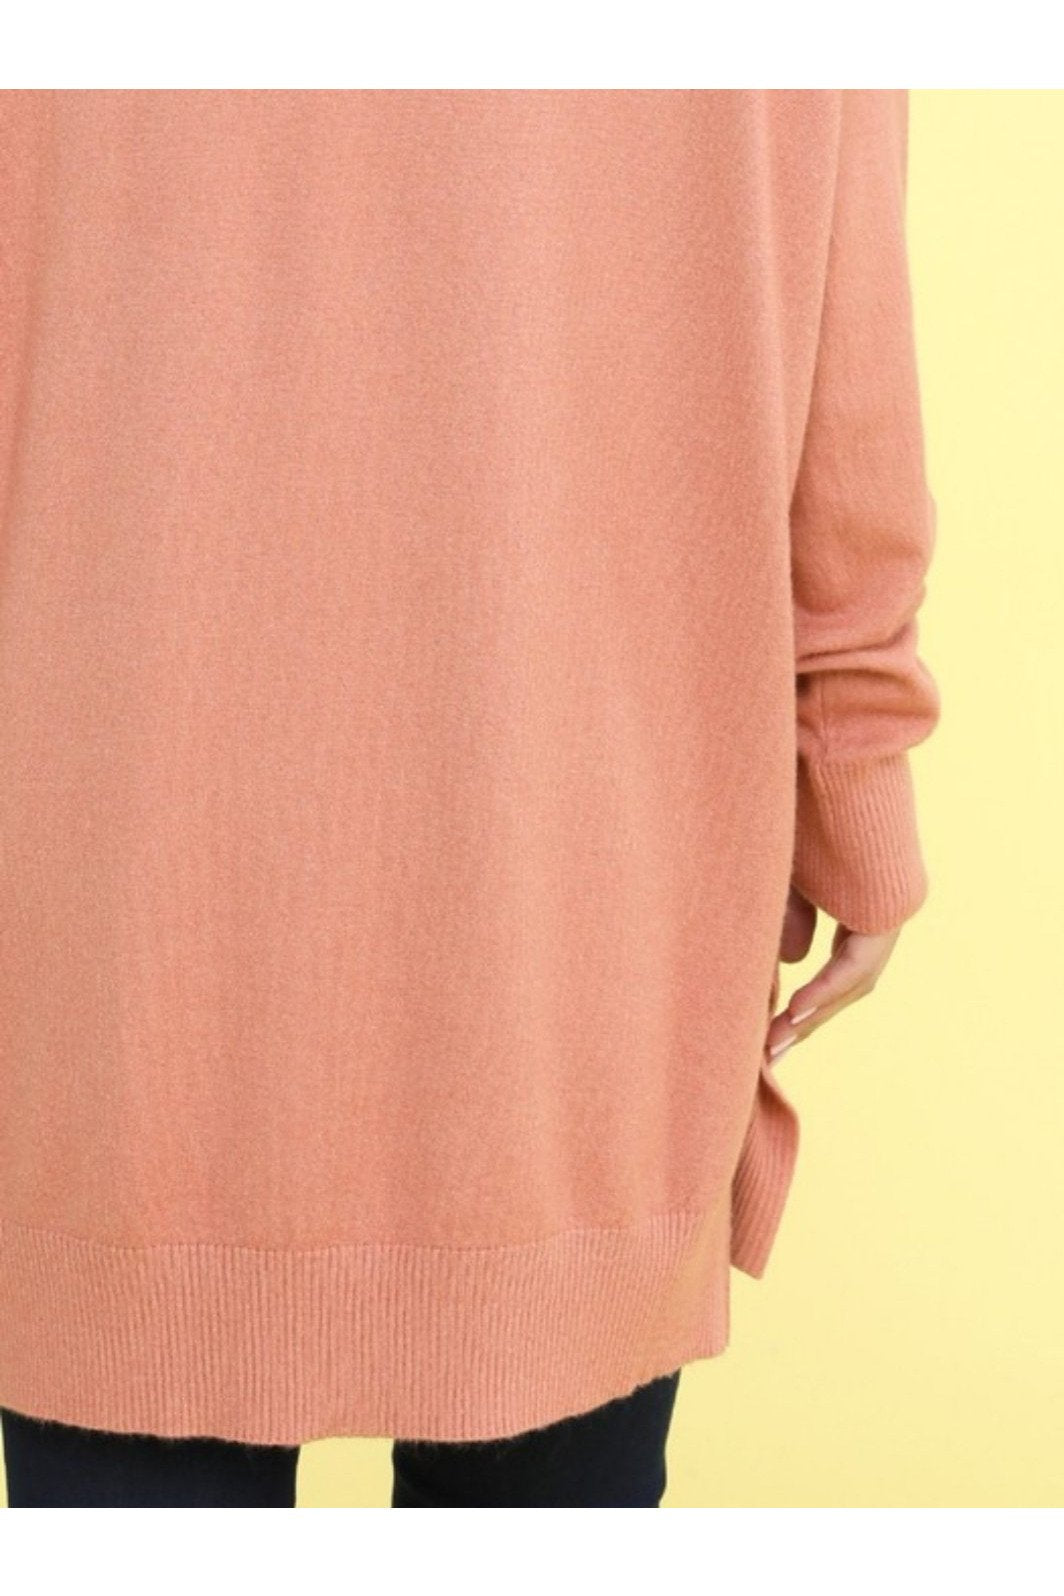 Tanya v-neck tunic sweater in dusty pink